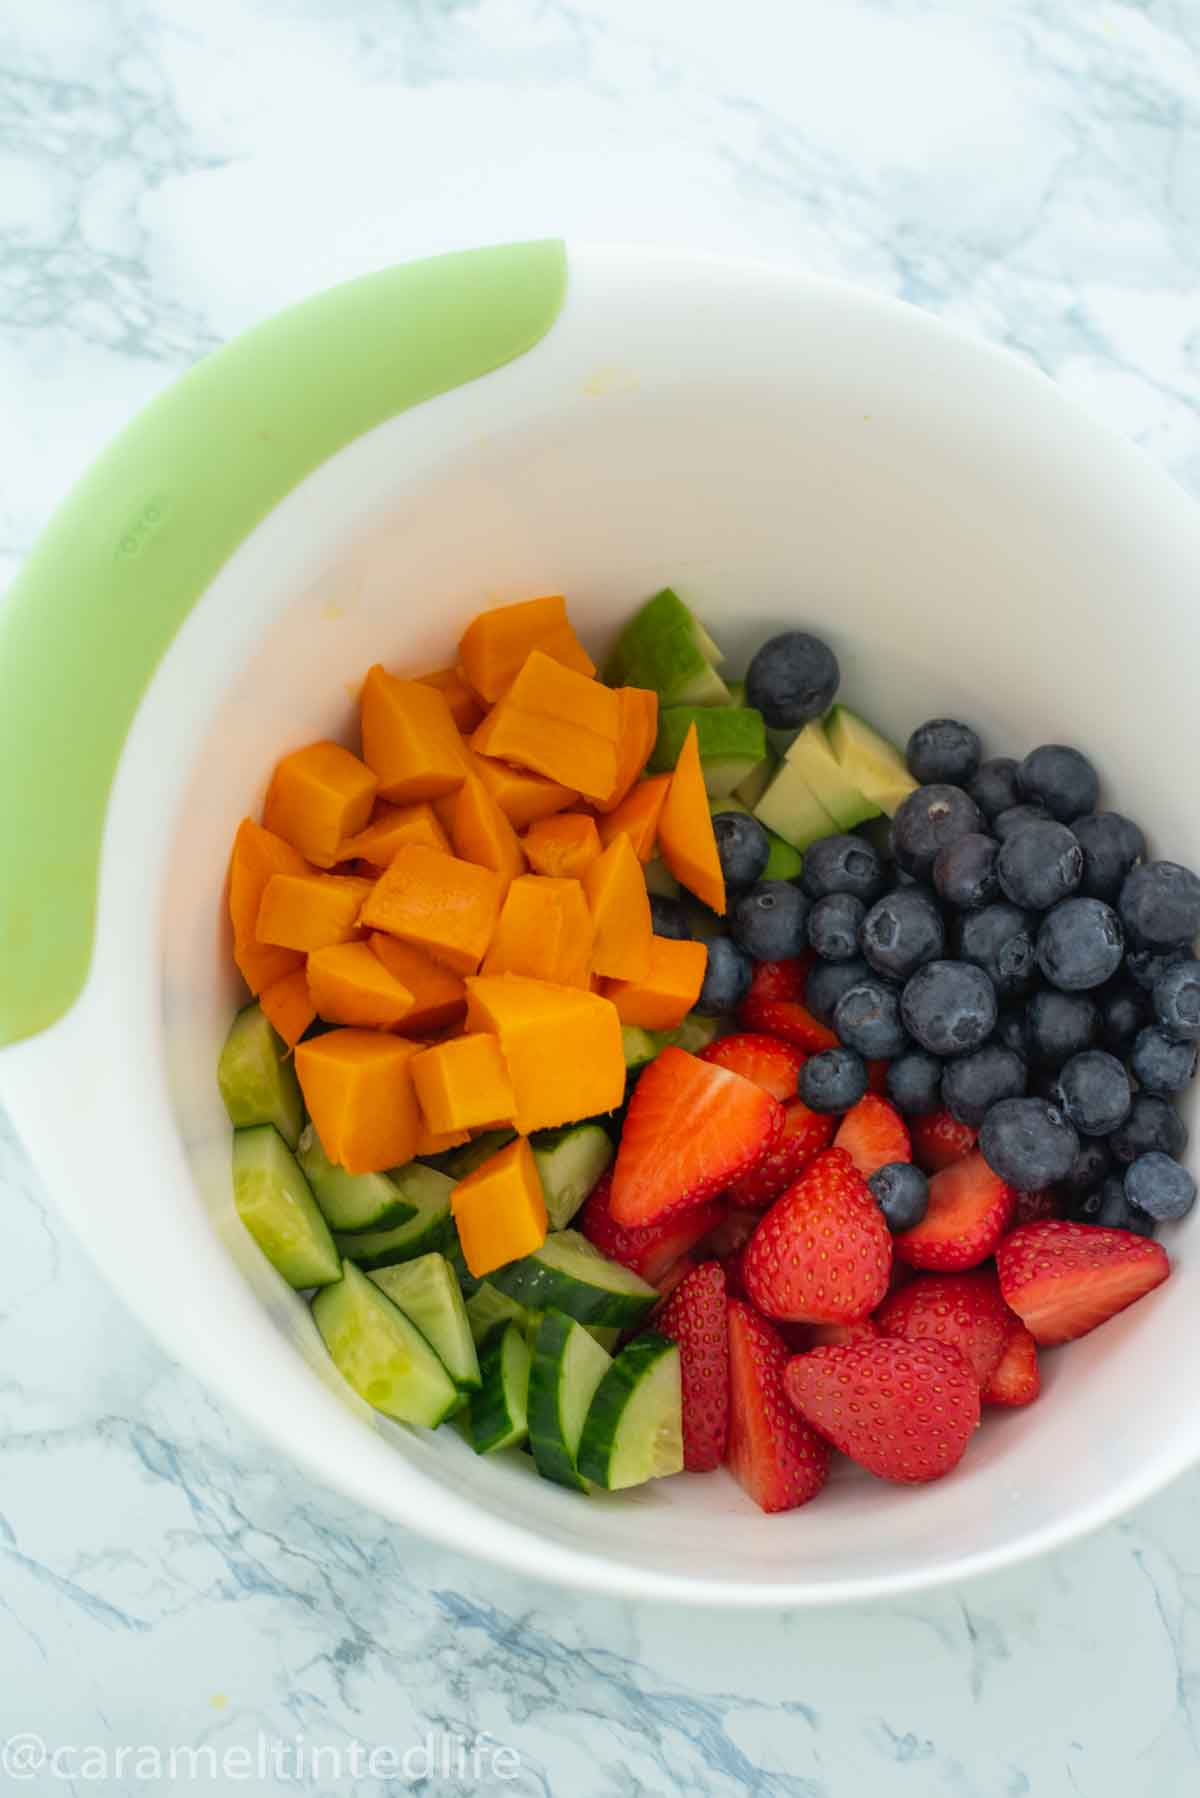 Mangoes, cucumber, avocado and berries in a large mixing bowl